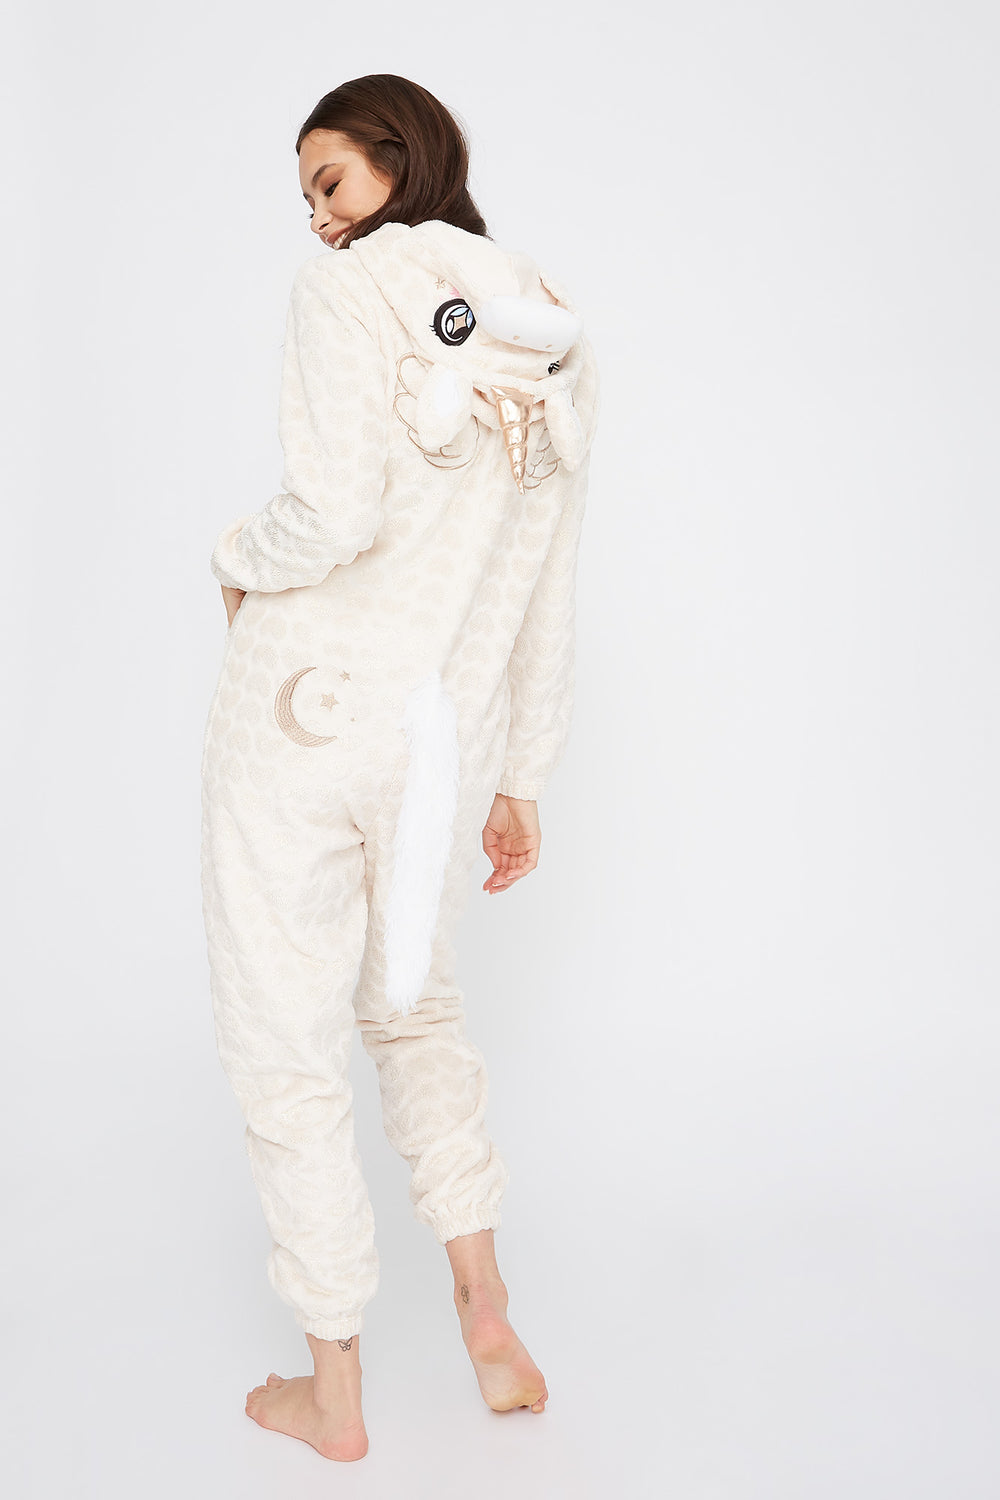 Soft Glitter Heart Printed Unicorn Zip-Up Onesie Rose